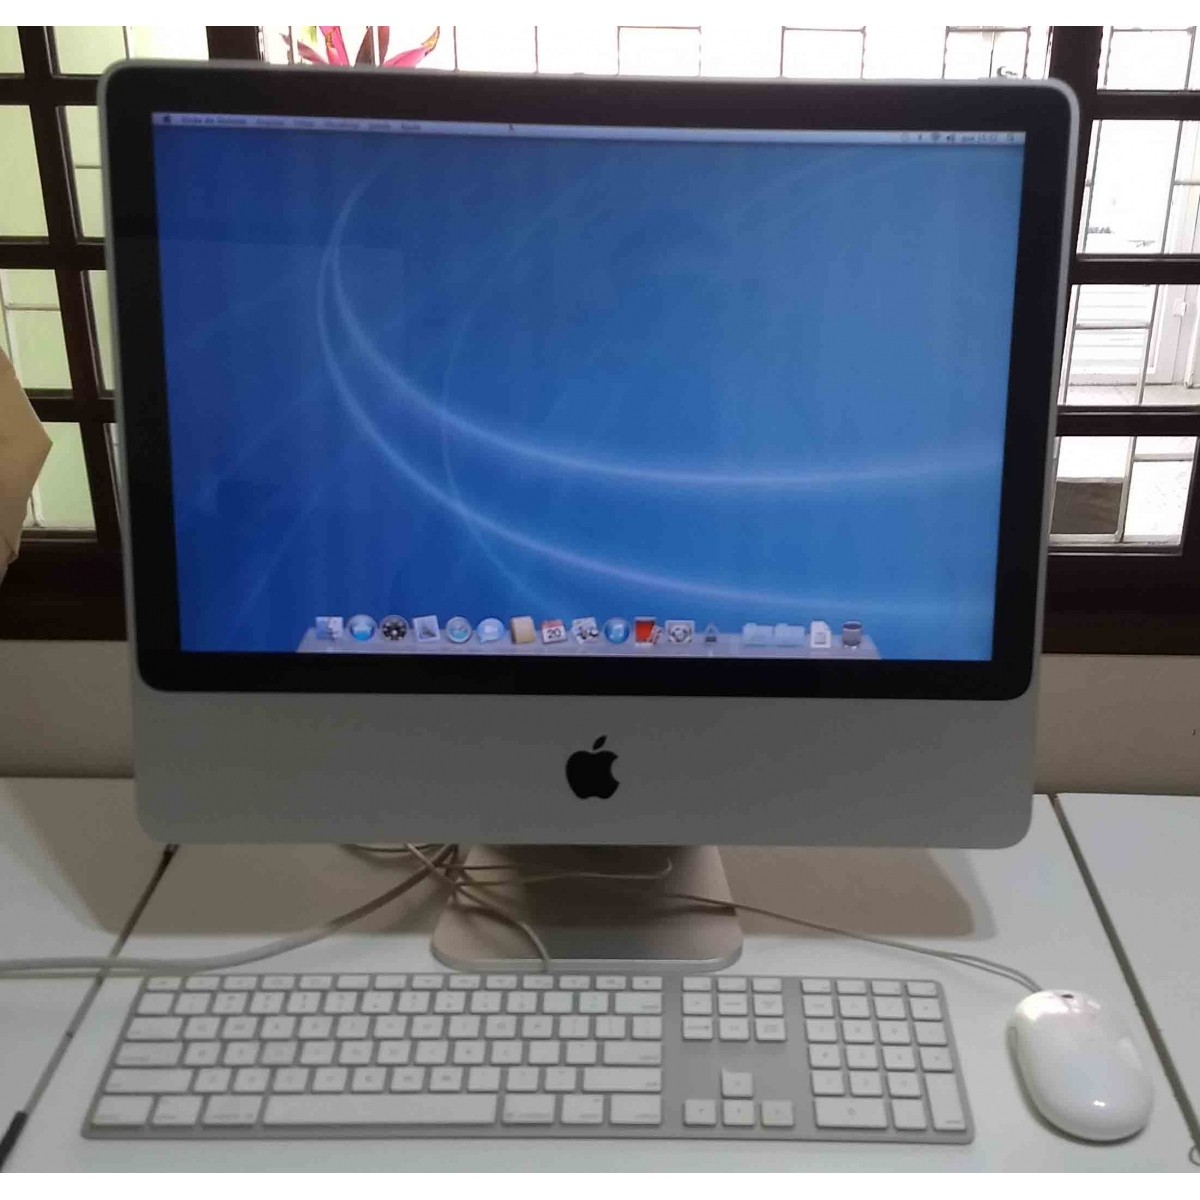 iMac MB324LL/A 20'' Intel Core 2 DUO 2.66GHz 4GB HD-1TB